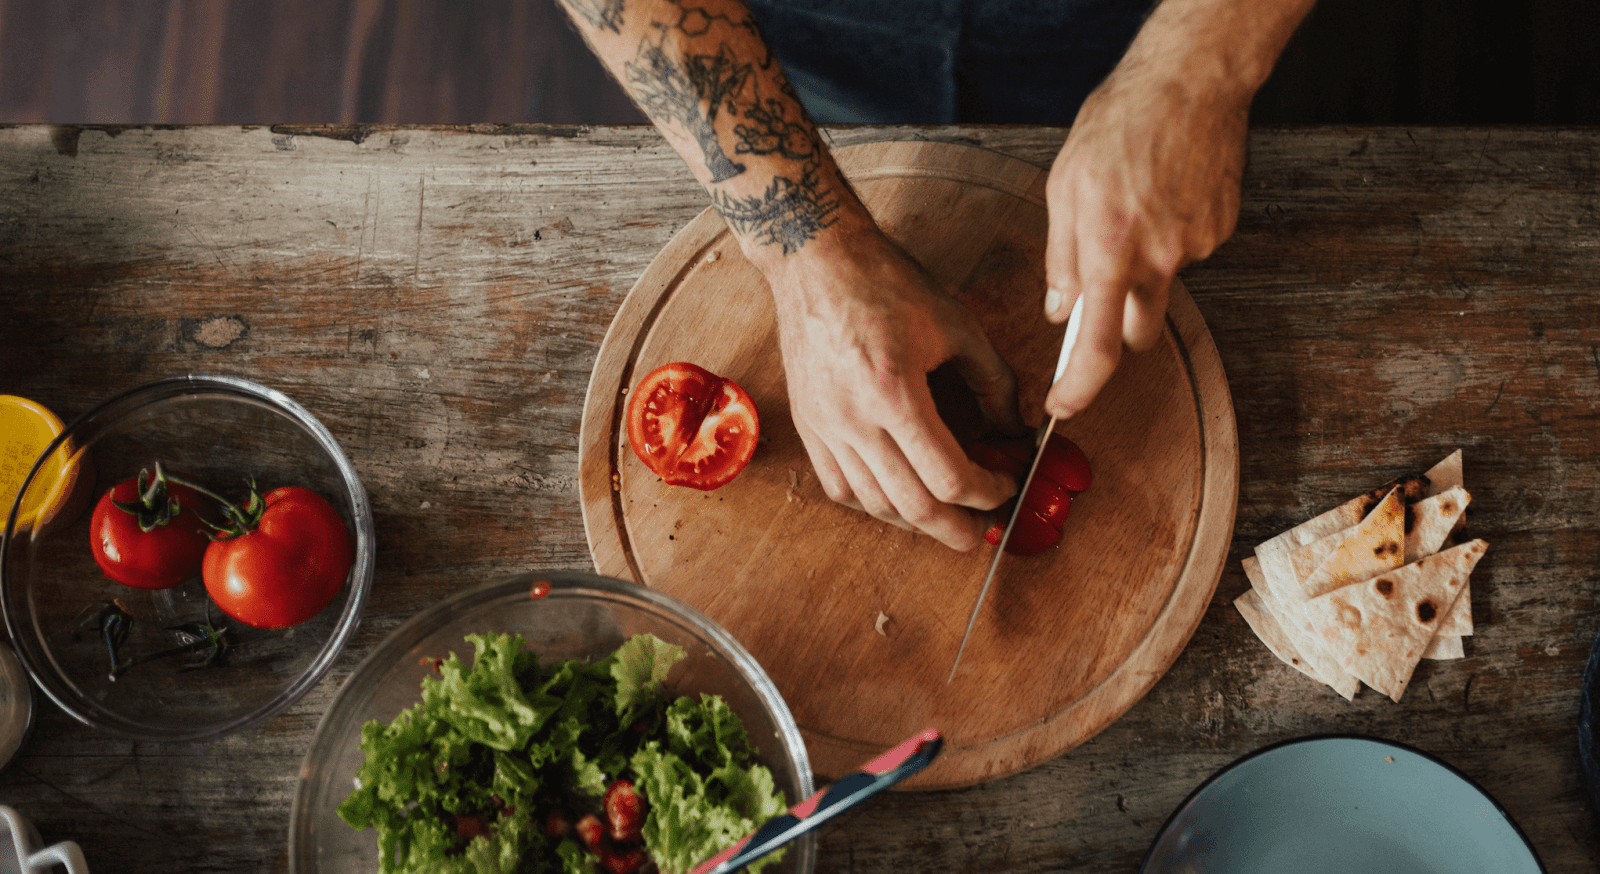 10 Game-Changing Vegetarian Cooking Tips from ProfessionalChefs recommend